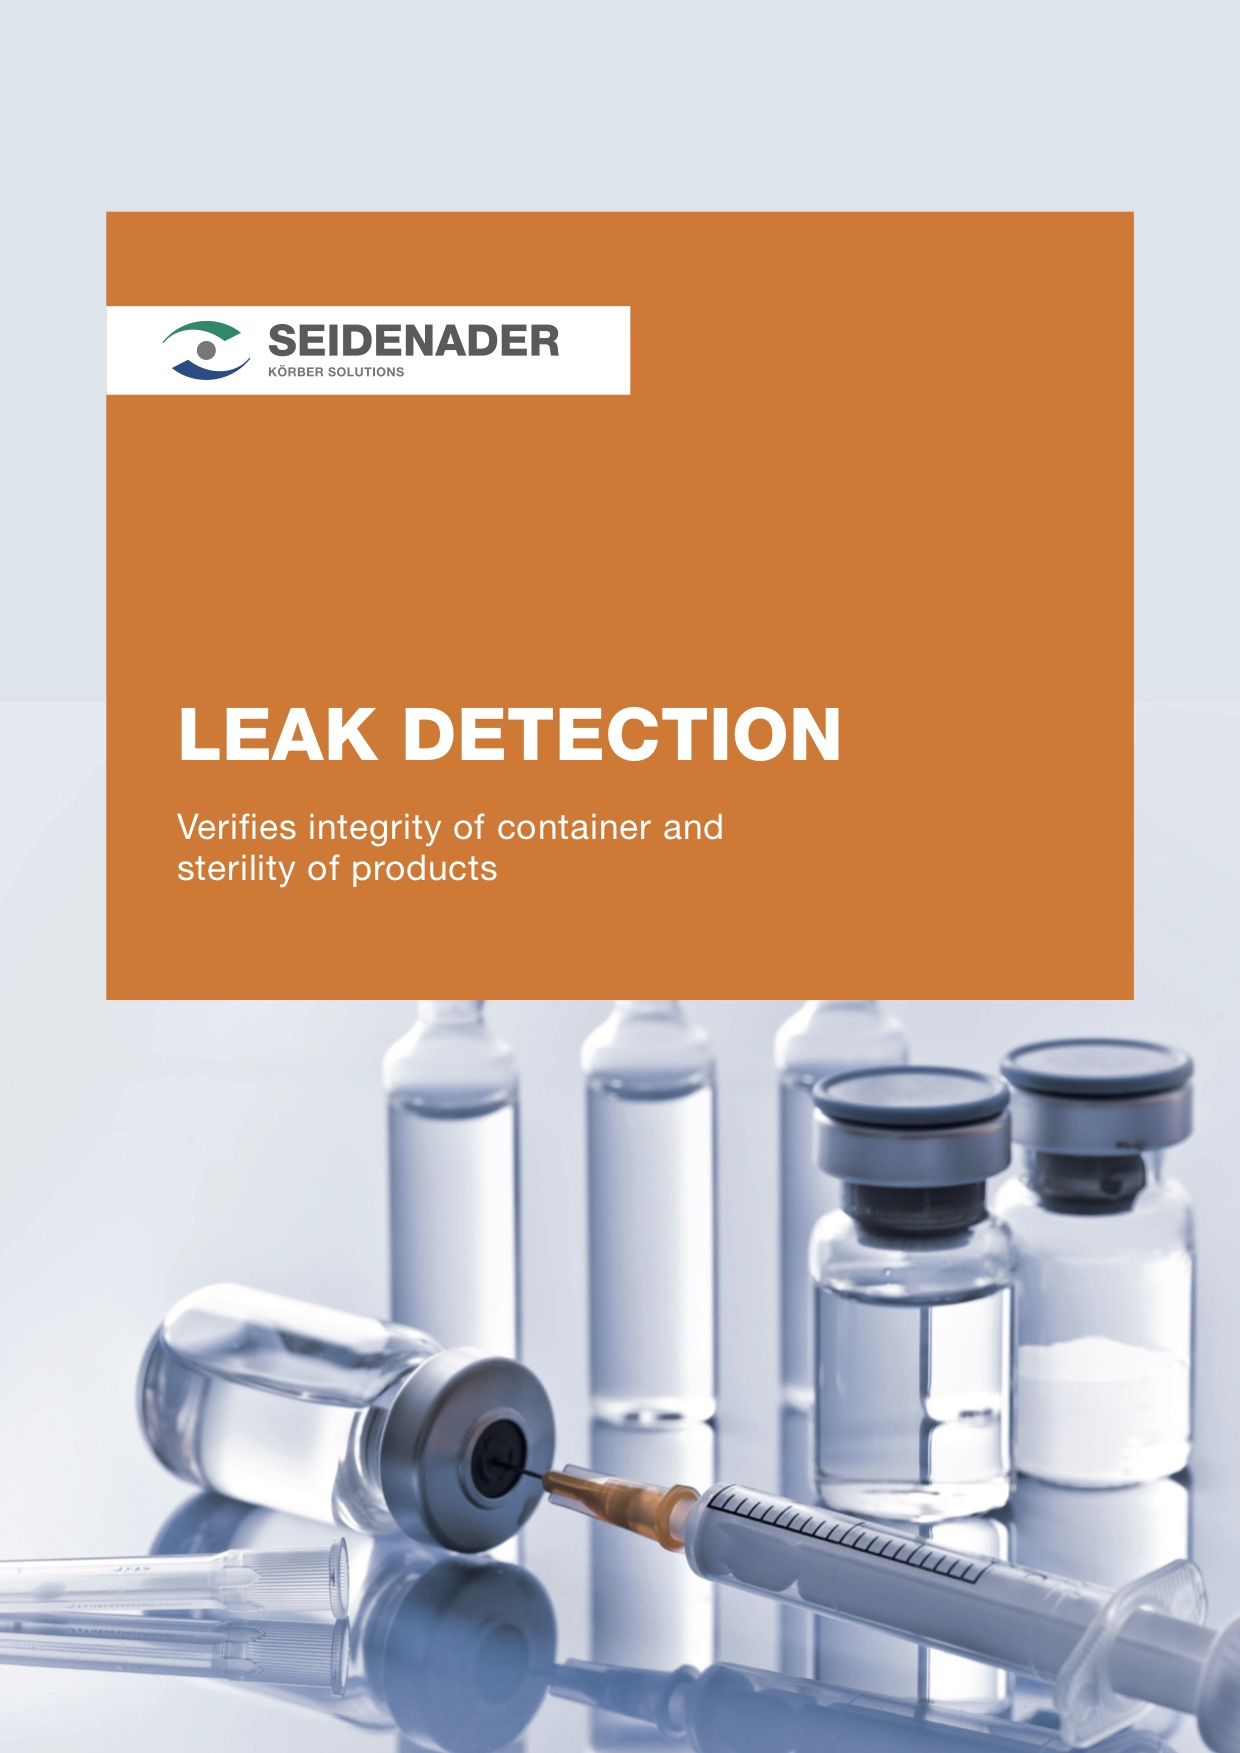 Seidenader_Leak_Detection